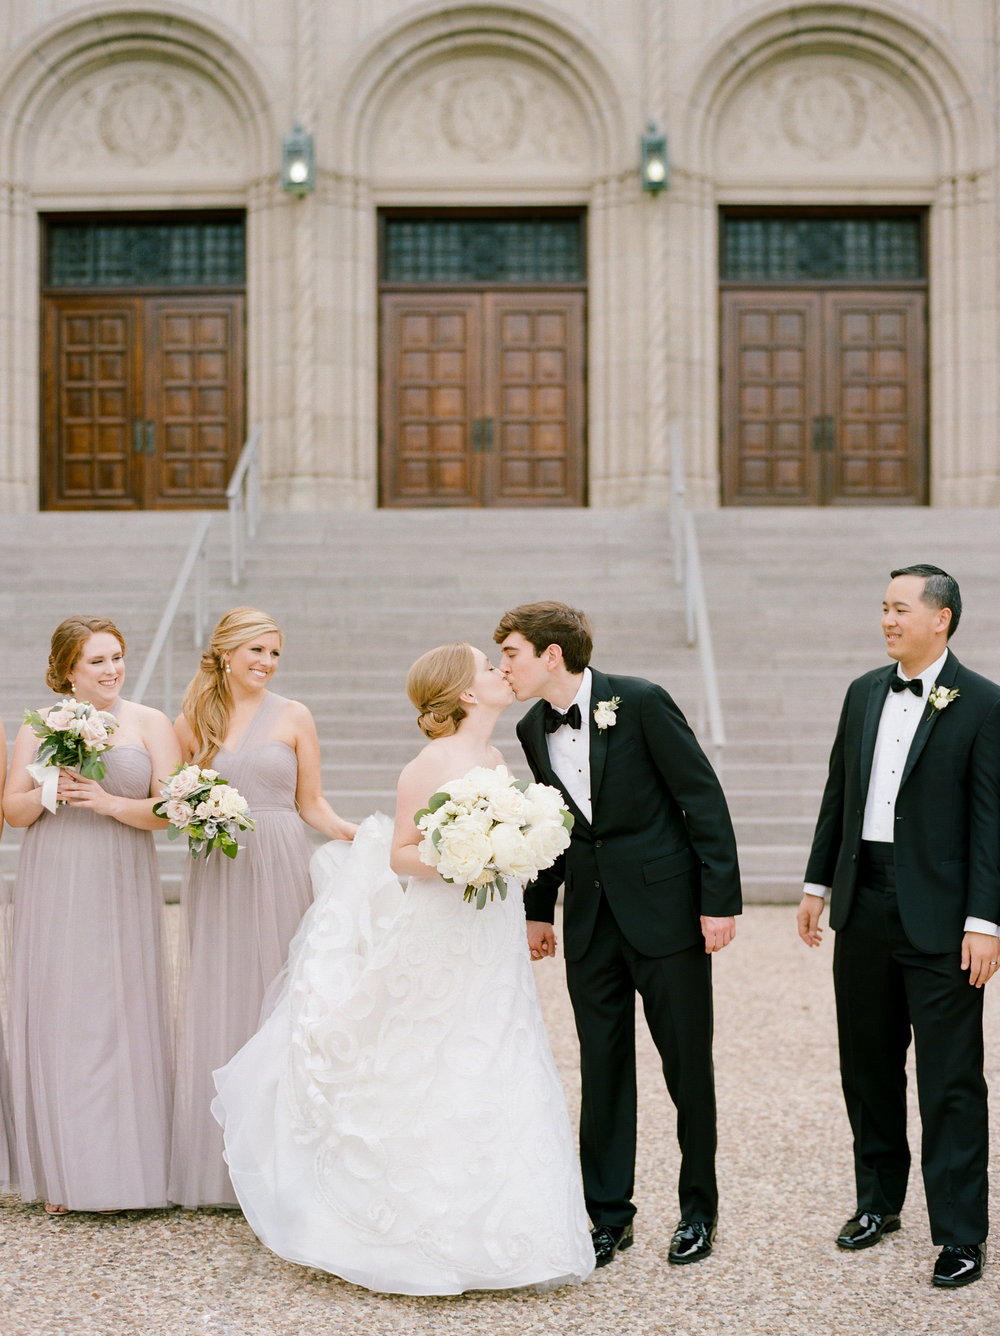 Fine-Art-Film-Houston-Wedding-Photographer-Best-Top-Luxury-Texas-Austin-Dallas-Destination-Dana-Fernandez-Photography-River-Oaks-Country-Club-South-Main-Baptist-Ceremony-Reception-Wedding-1.jpg